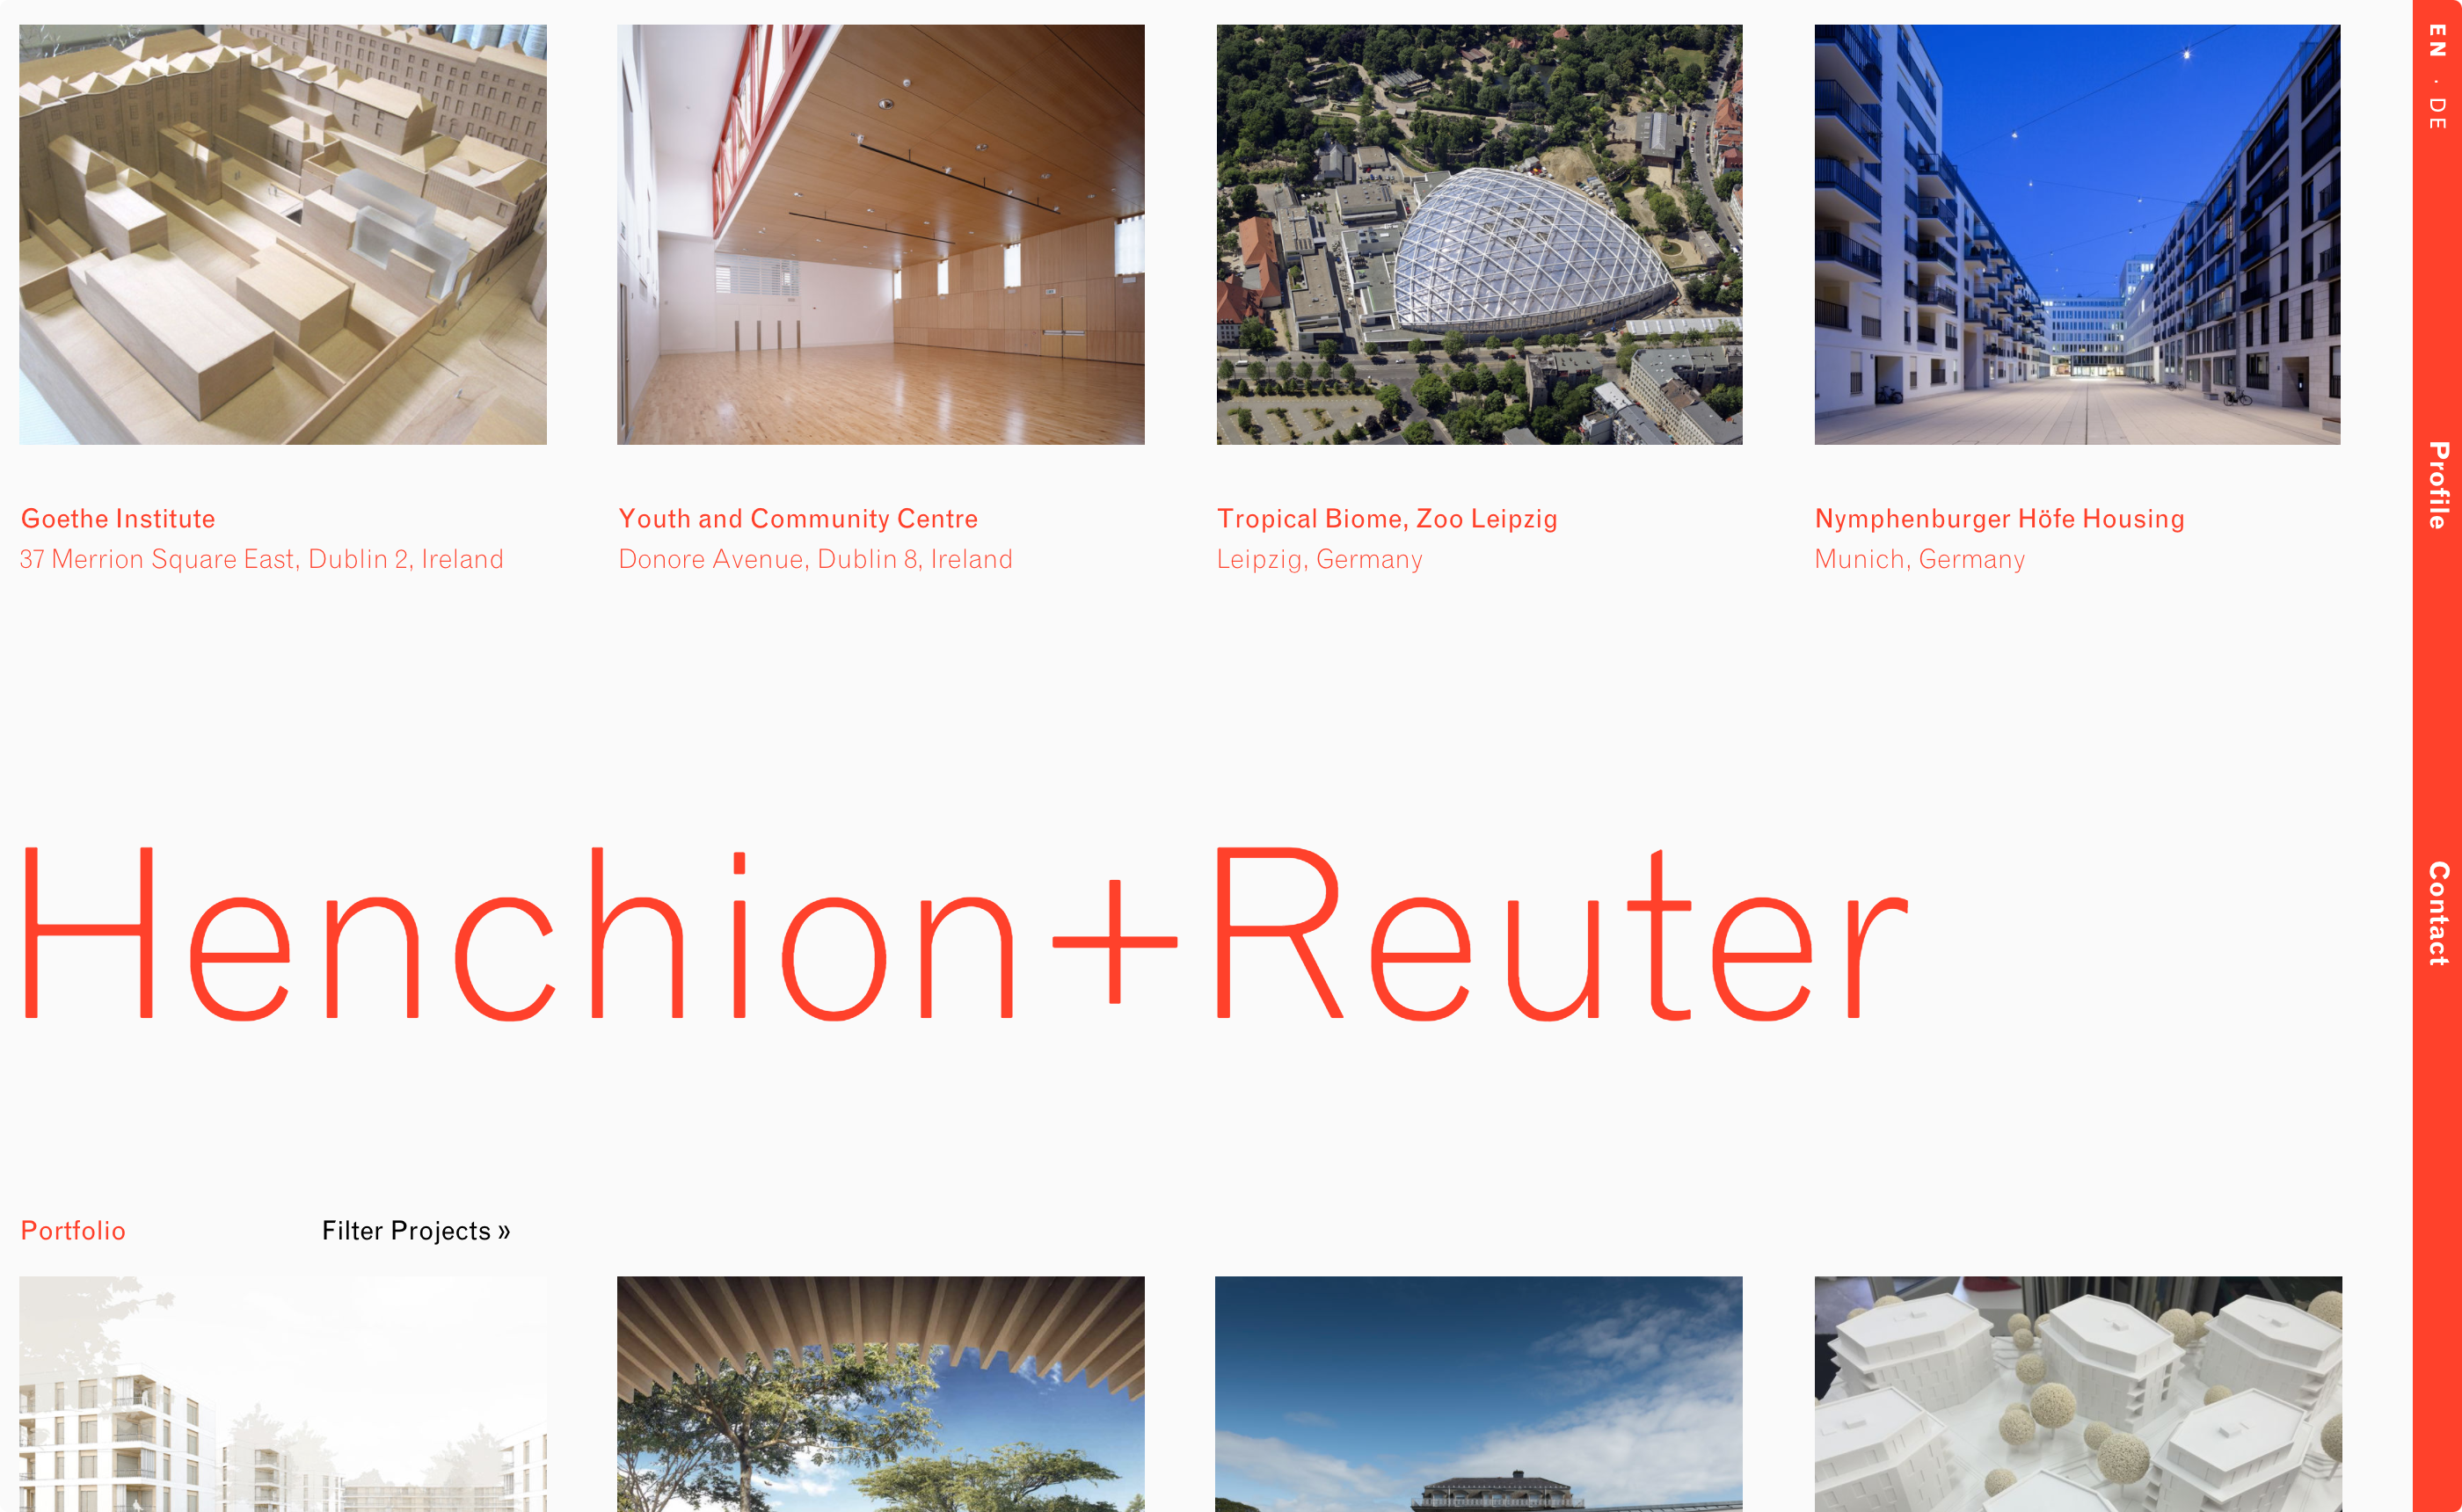 Cover image: Henchion + Reuter